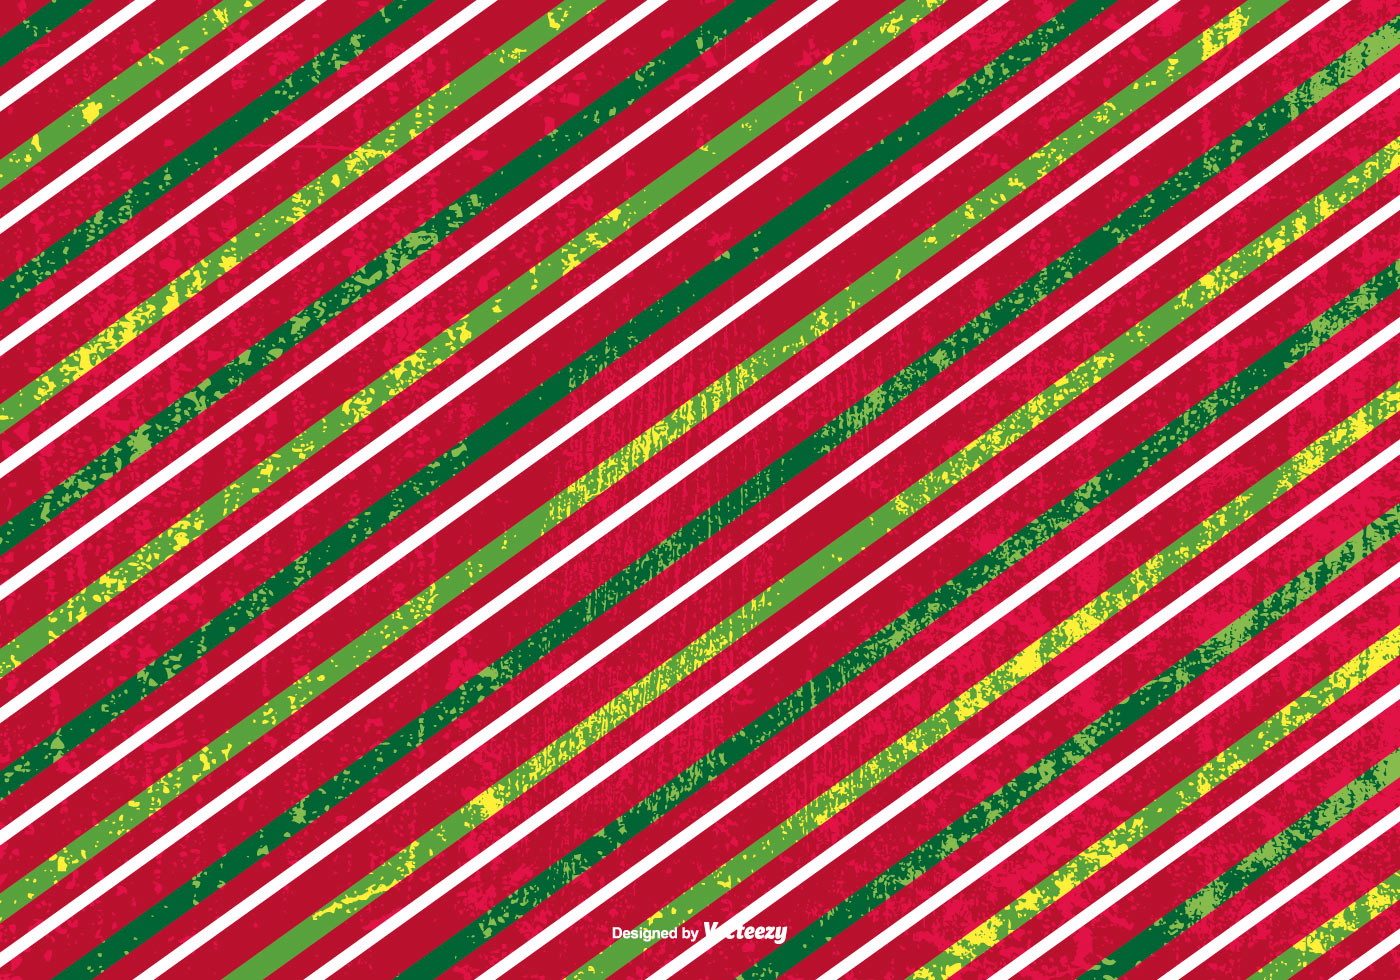 Grunge Striped Christmas Background Download Free Vector